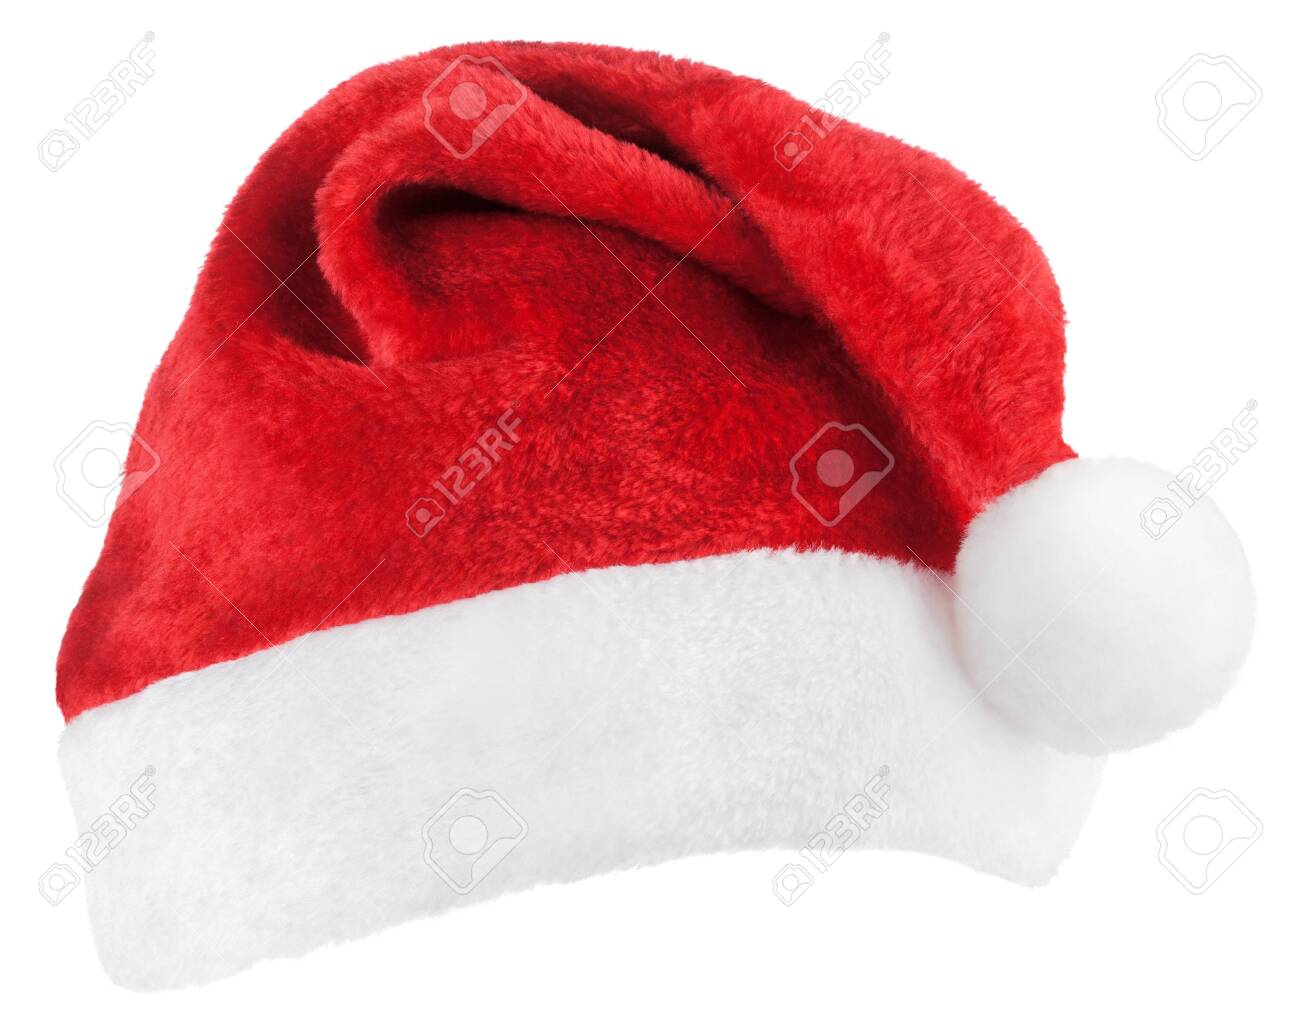 Santa Claus or christmas red hat isolated on white background - 130723641